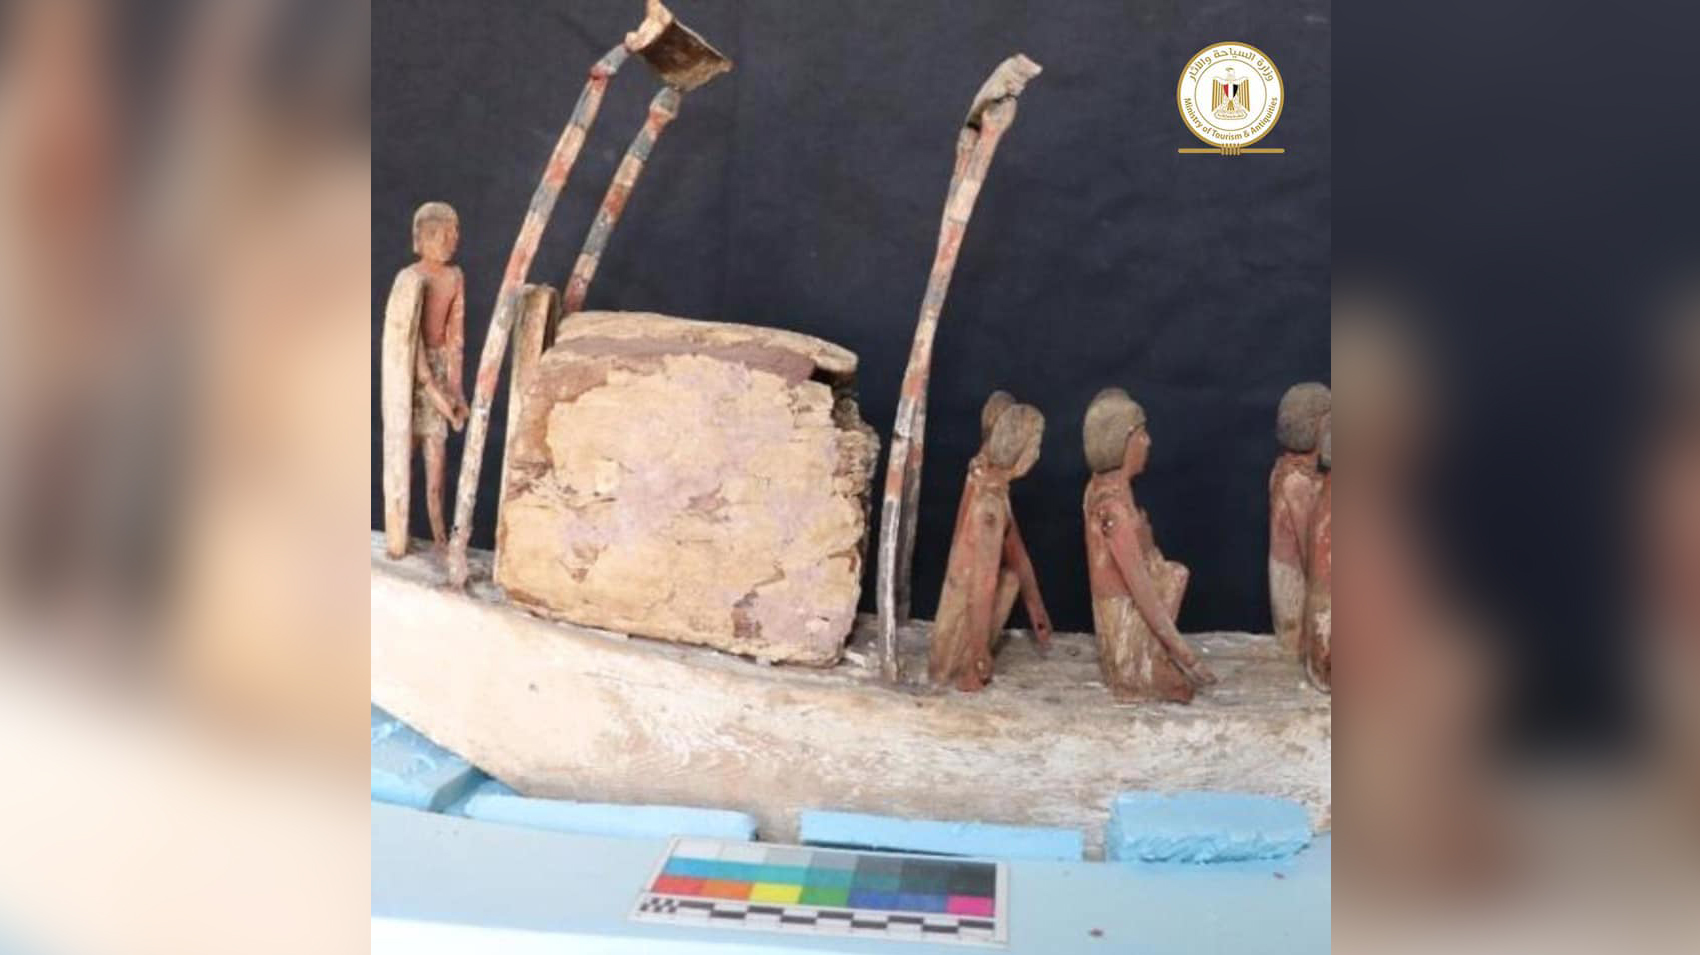 Among the goods found in the burial shafts is this boat with rowers.